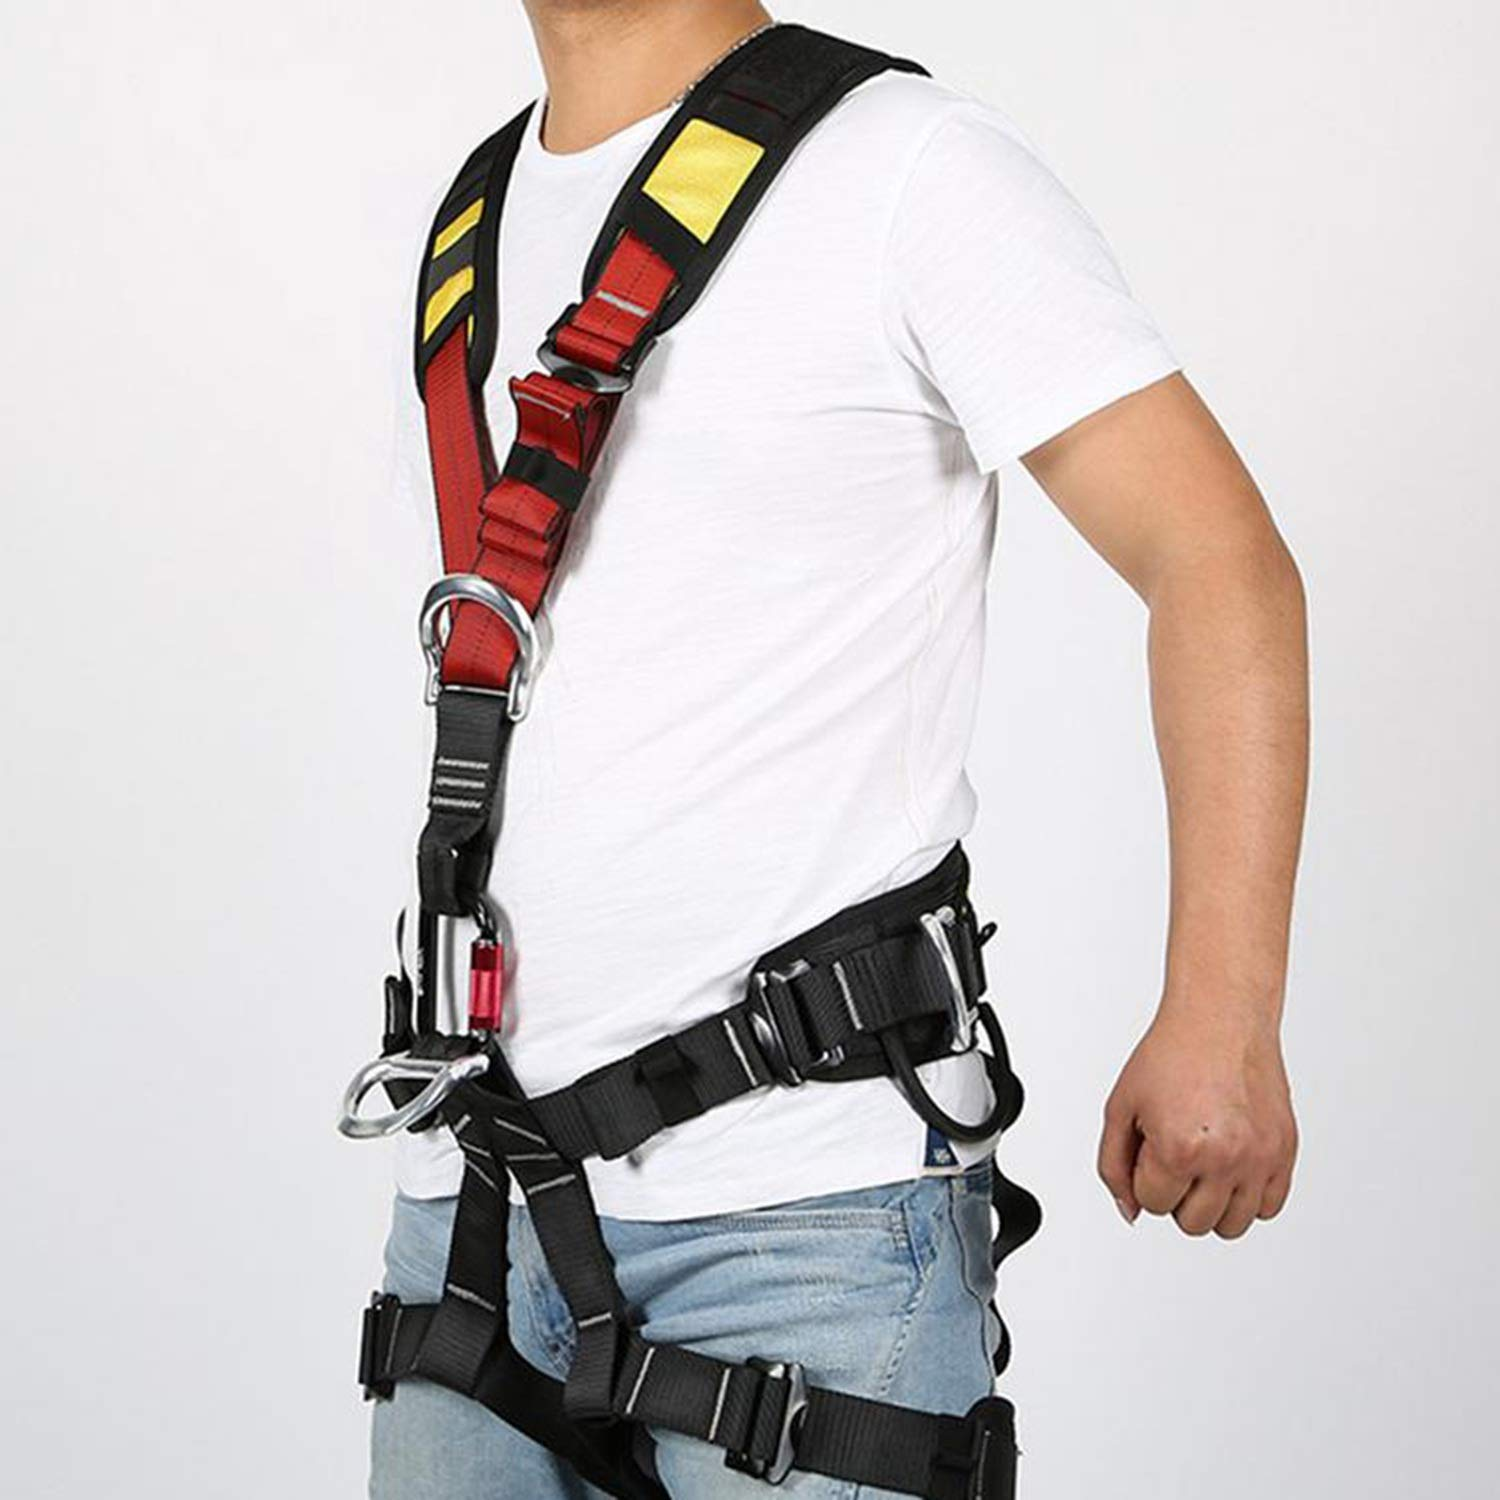 SODIAL Outdoor Climbing Rock Rappelling Mountaineering Accessories Body Wearing Seat Belt Sitting Waist Bust Protection by SODIAL (Image #4)